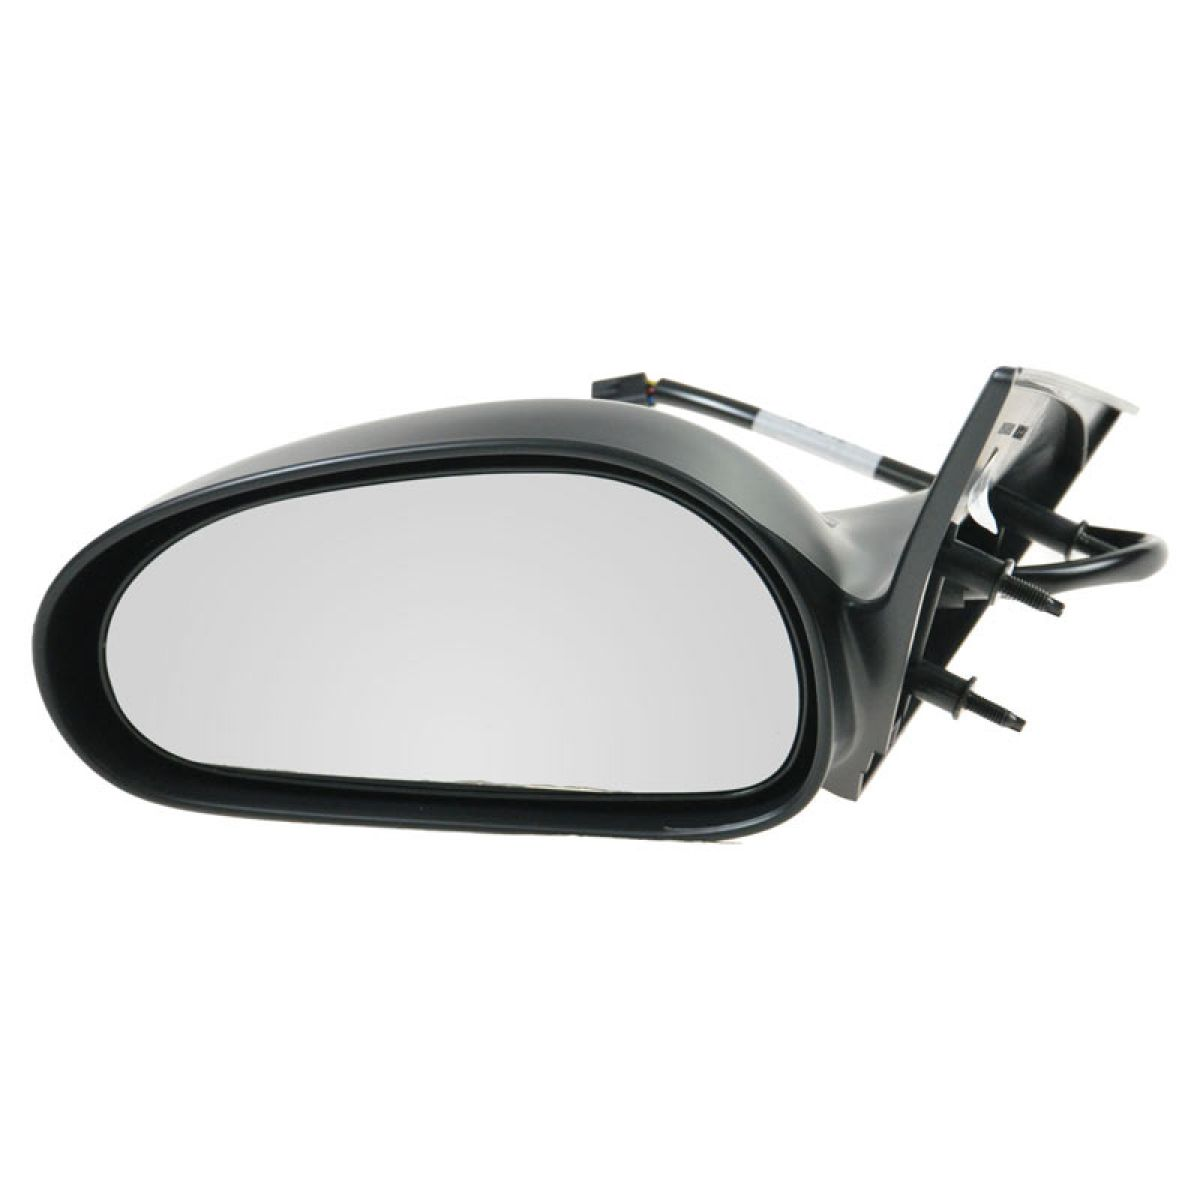 94-95 Ford Mustang Passenger Side Mirror Replacement